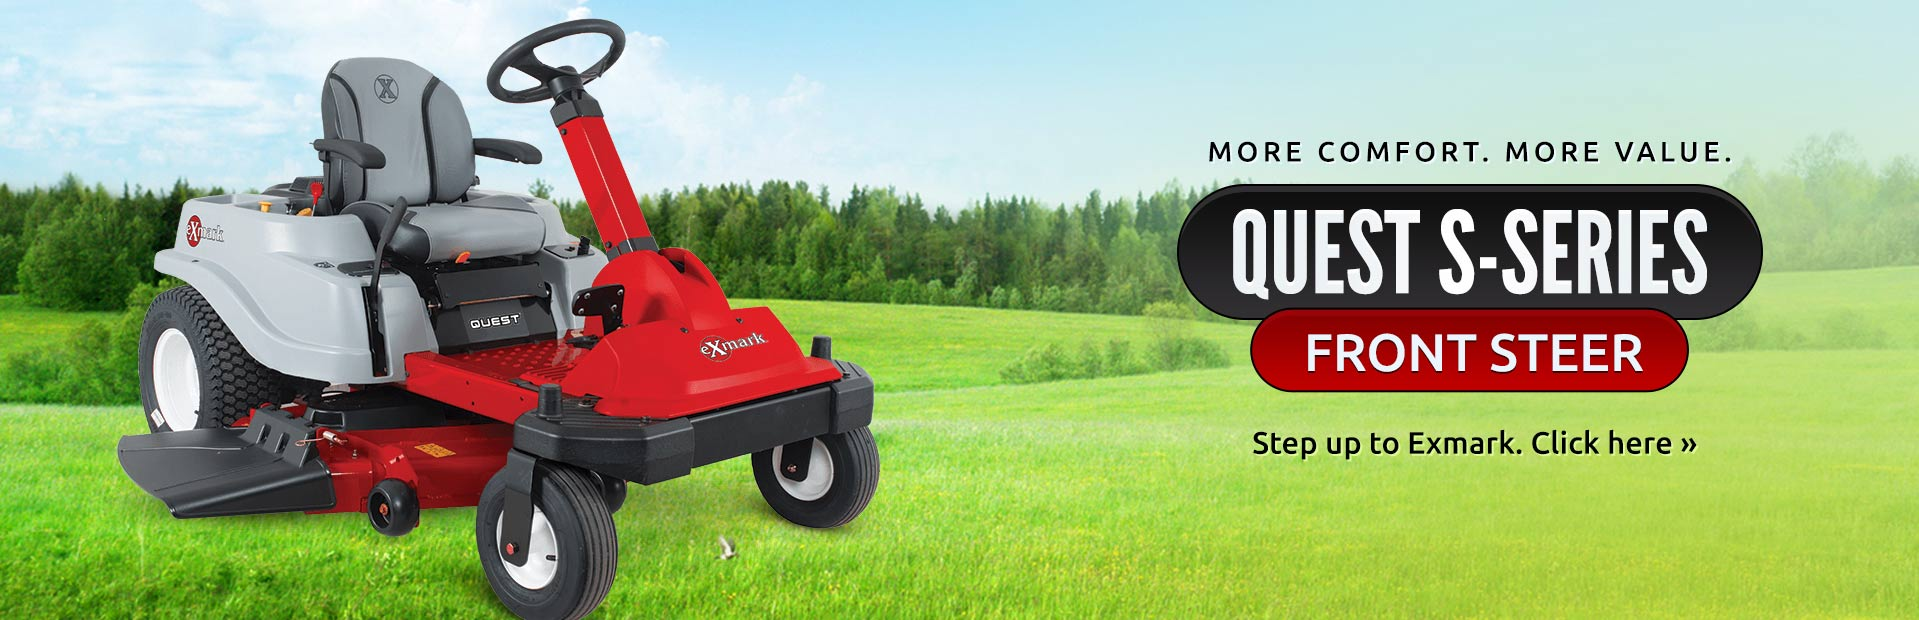 Exmark Quest S-Series Front Steer: Click here for details.